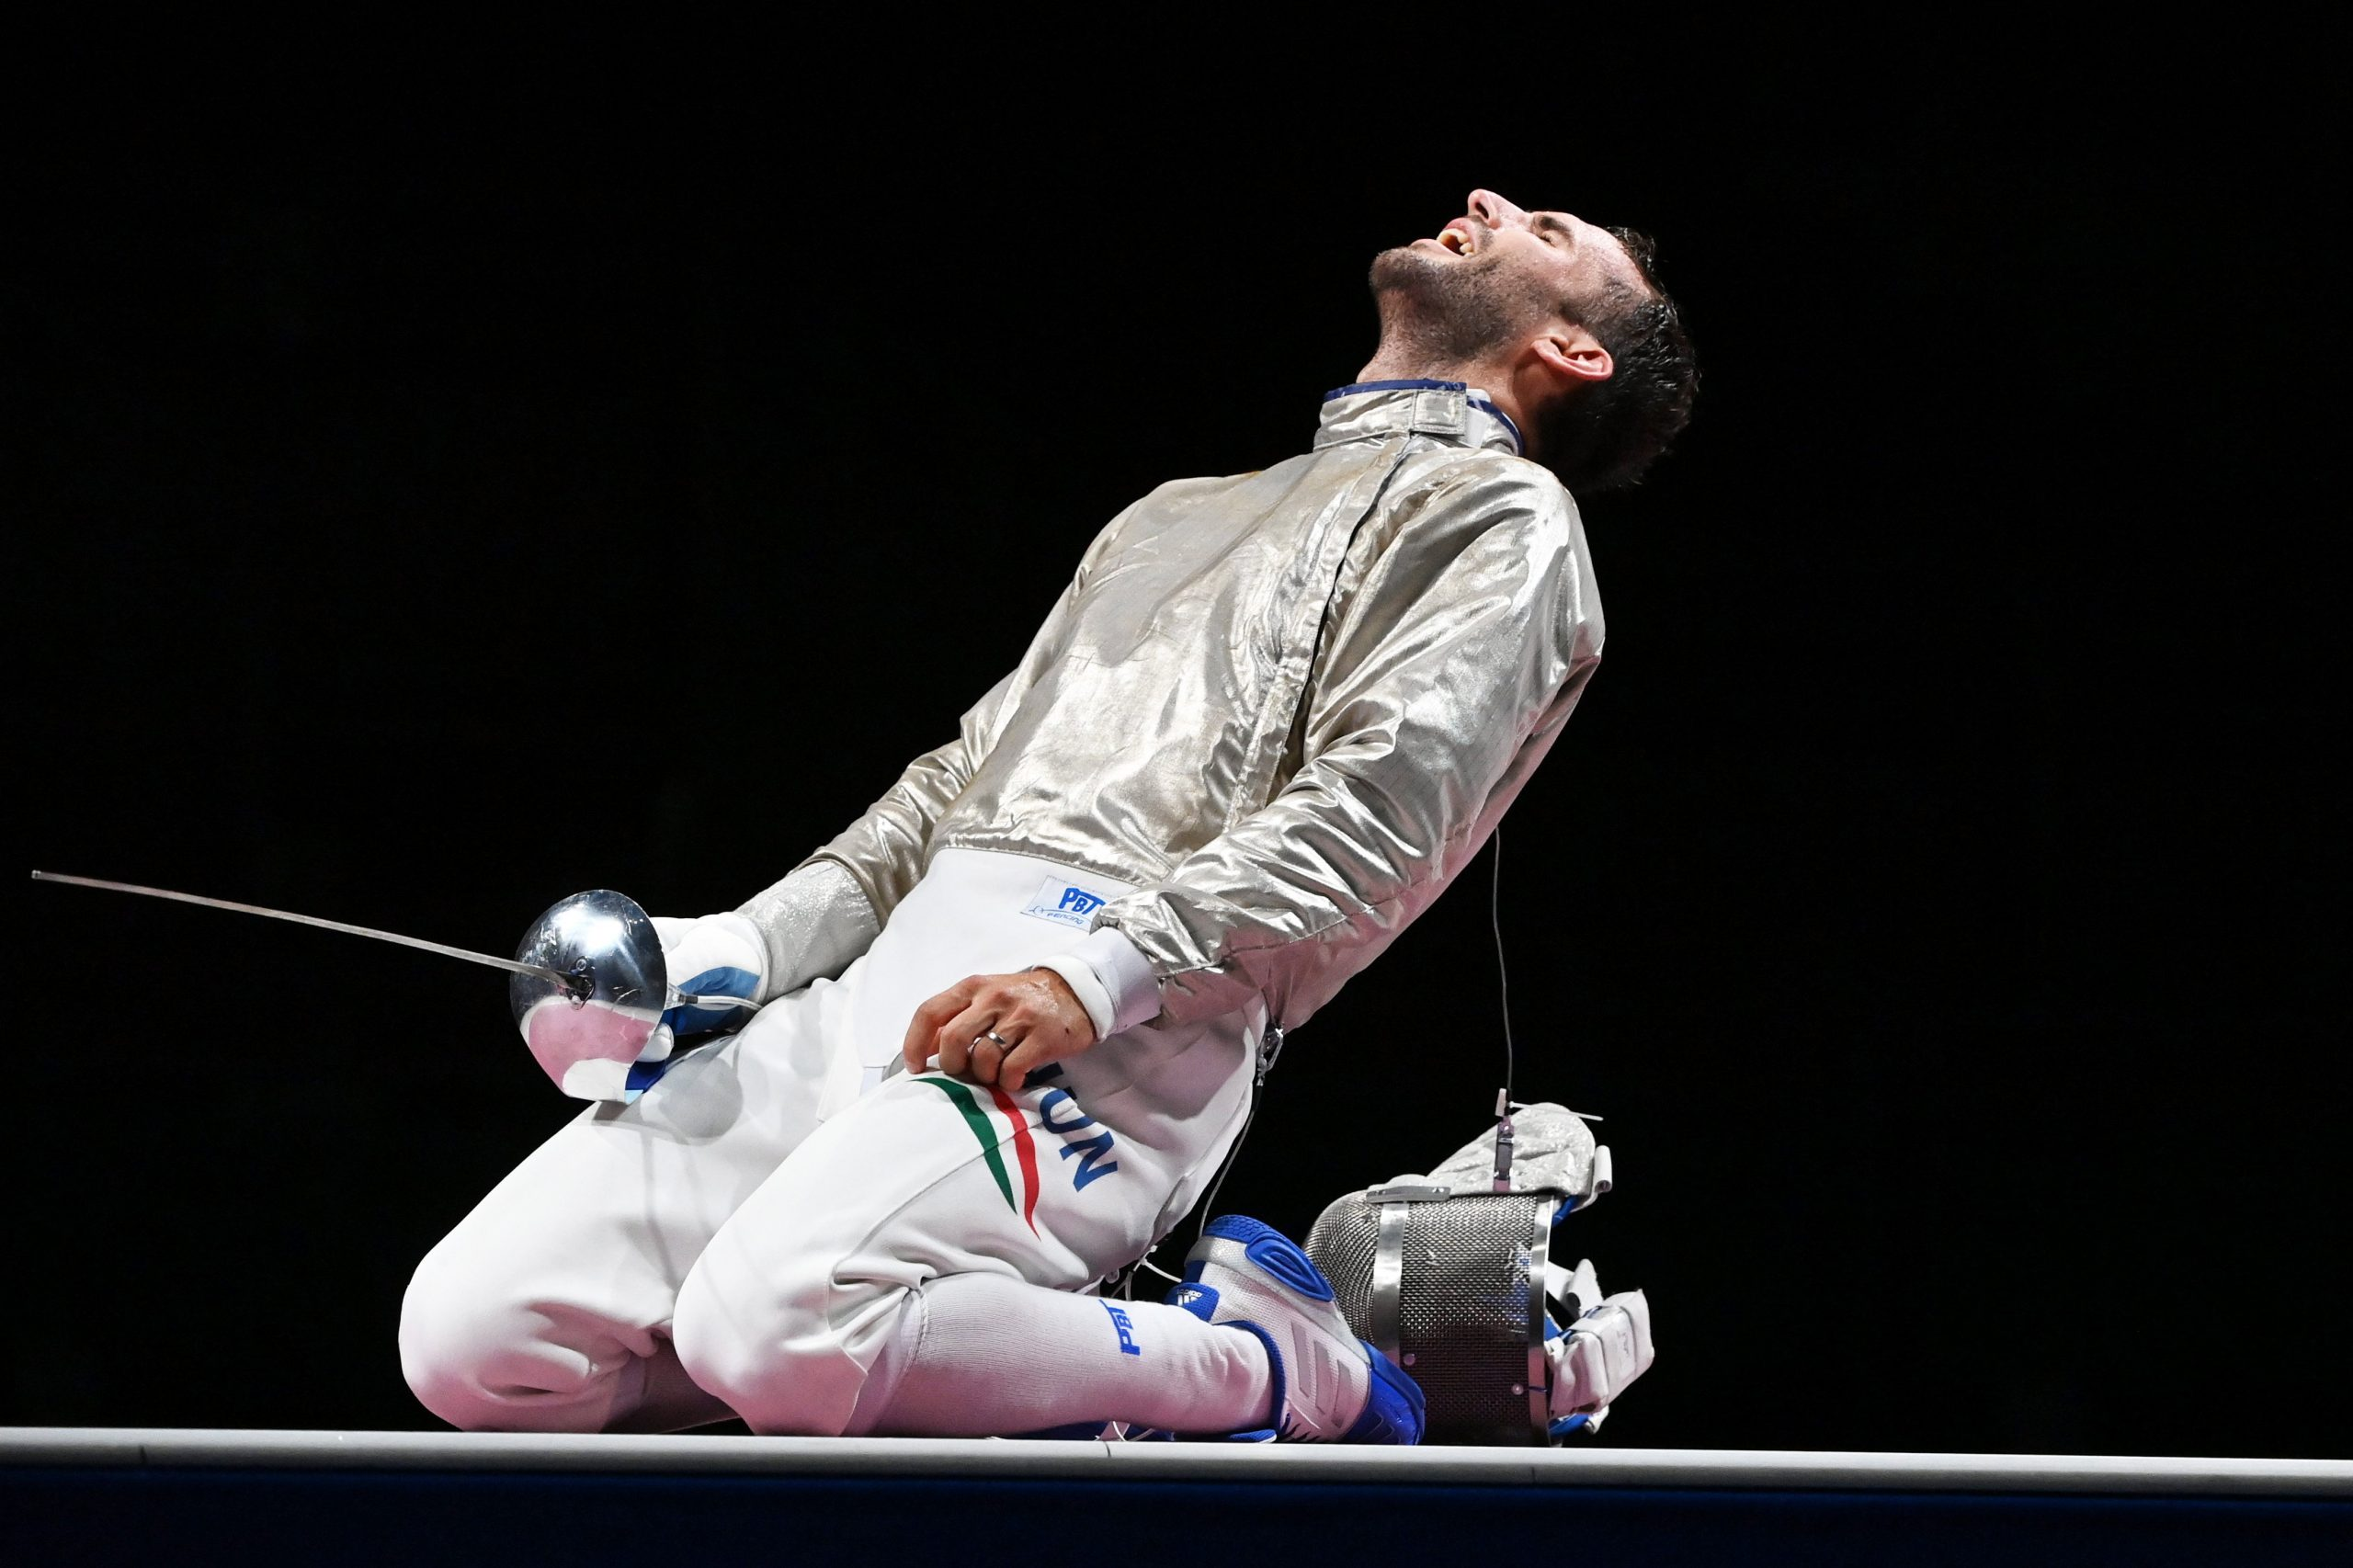 First Week in Tokyo: Hungarian Athletes Collect 2 Gold, 1 Silver, and 2 Bronze Medals